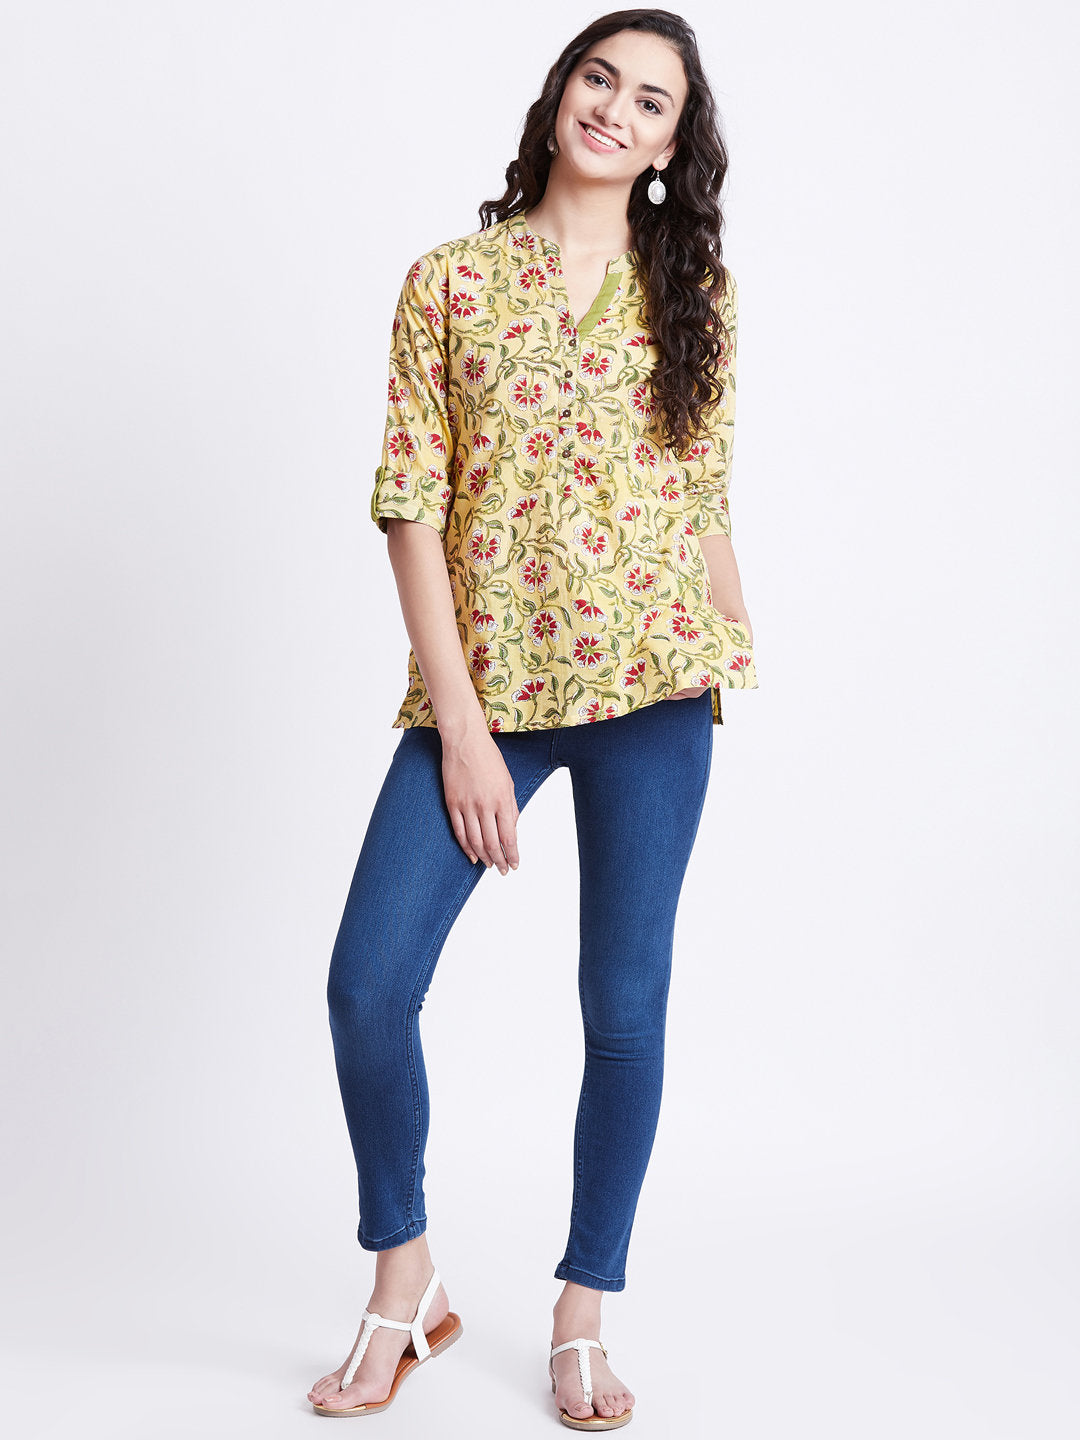 Hand Block Printed Indian tunic/ kurti in lime yellow colour in floral design